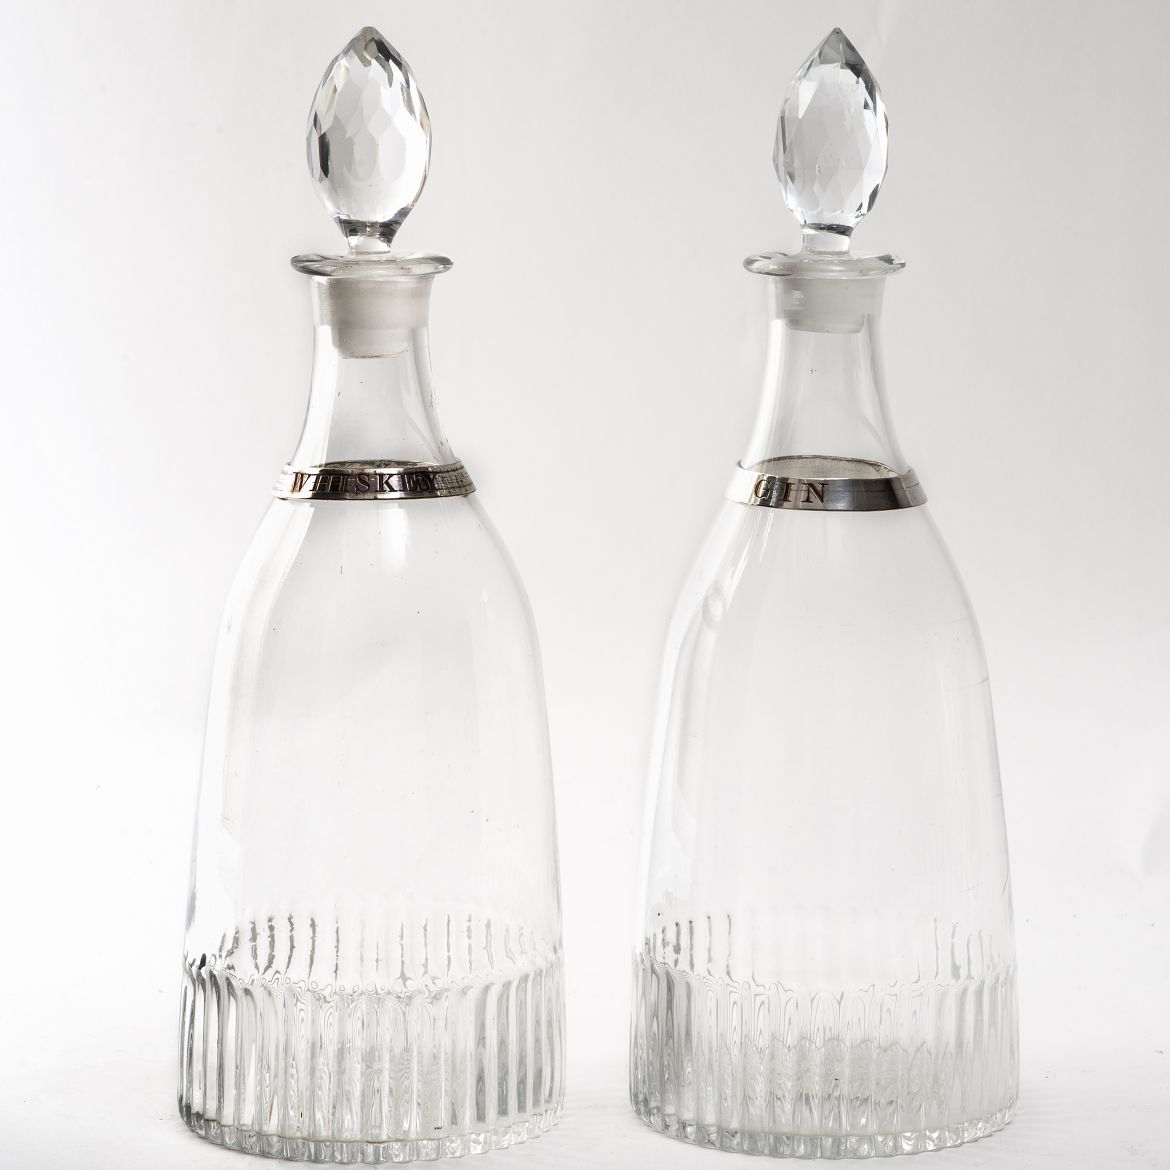 French Tapering Decanters